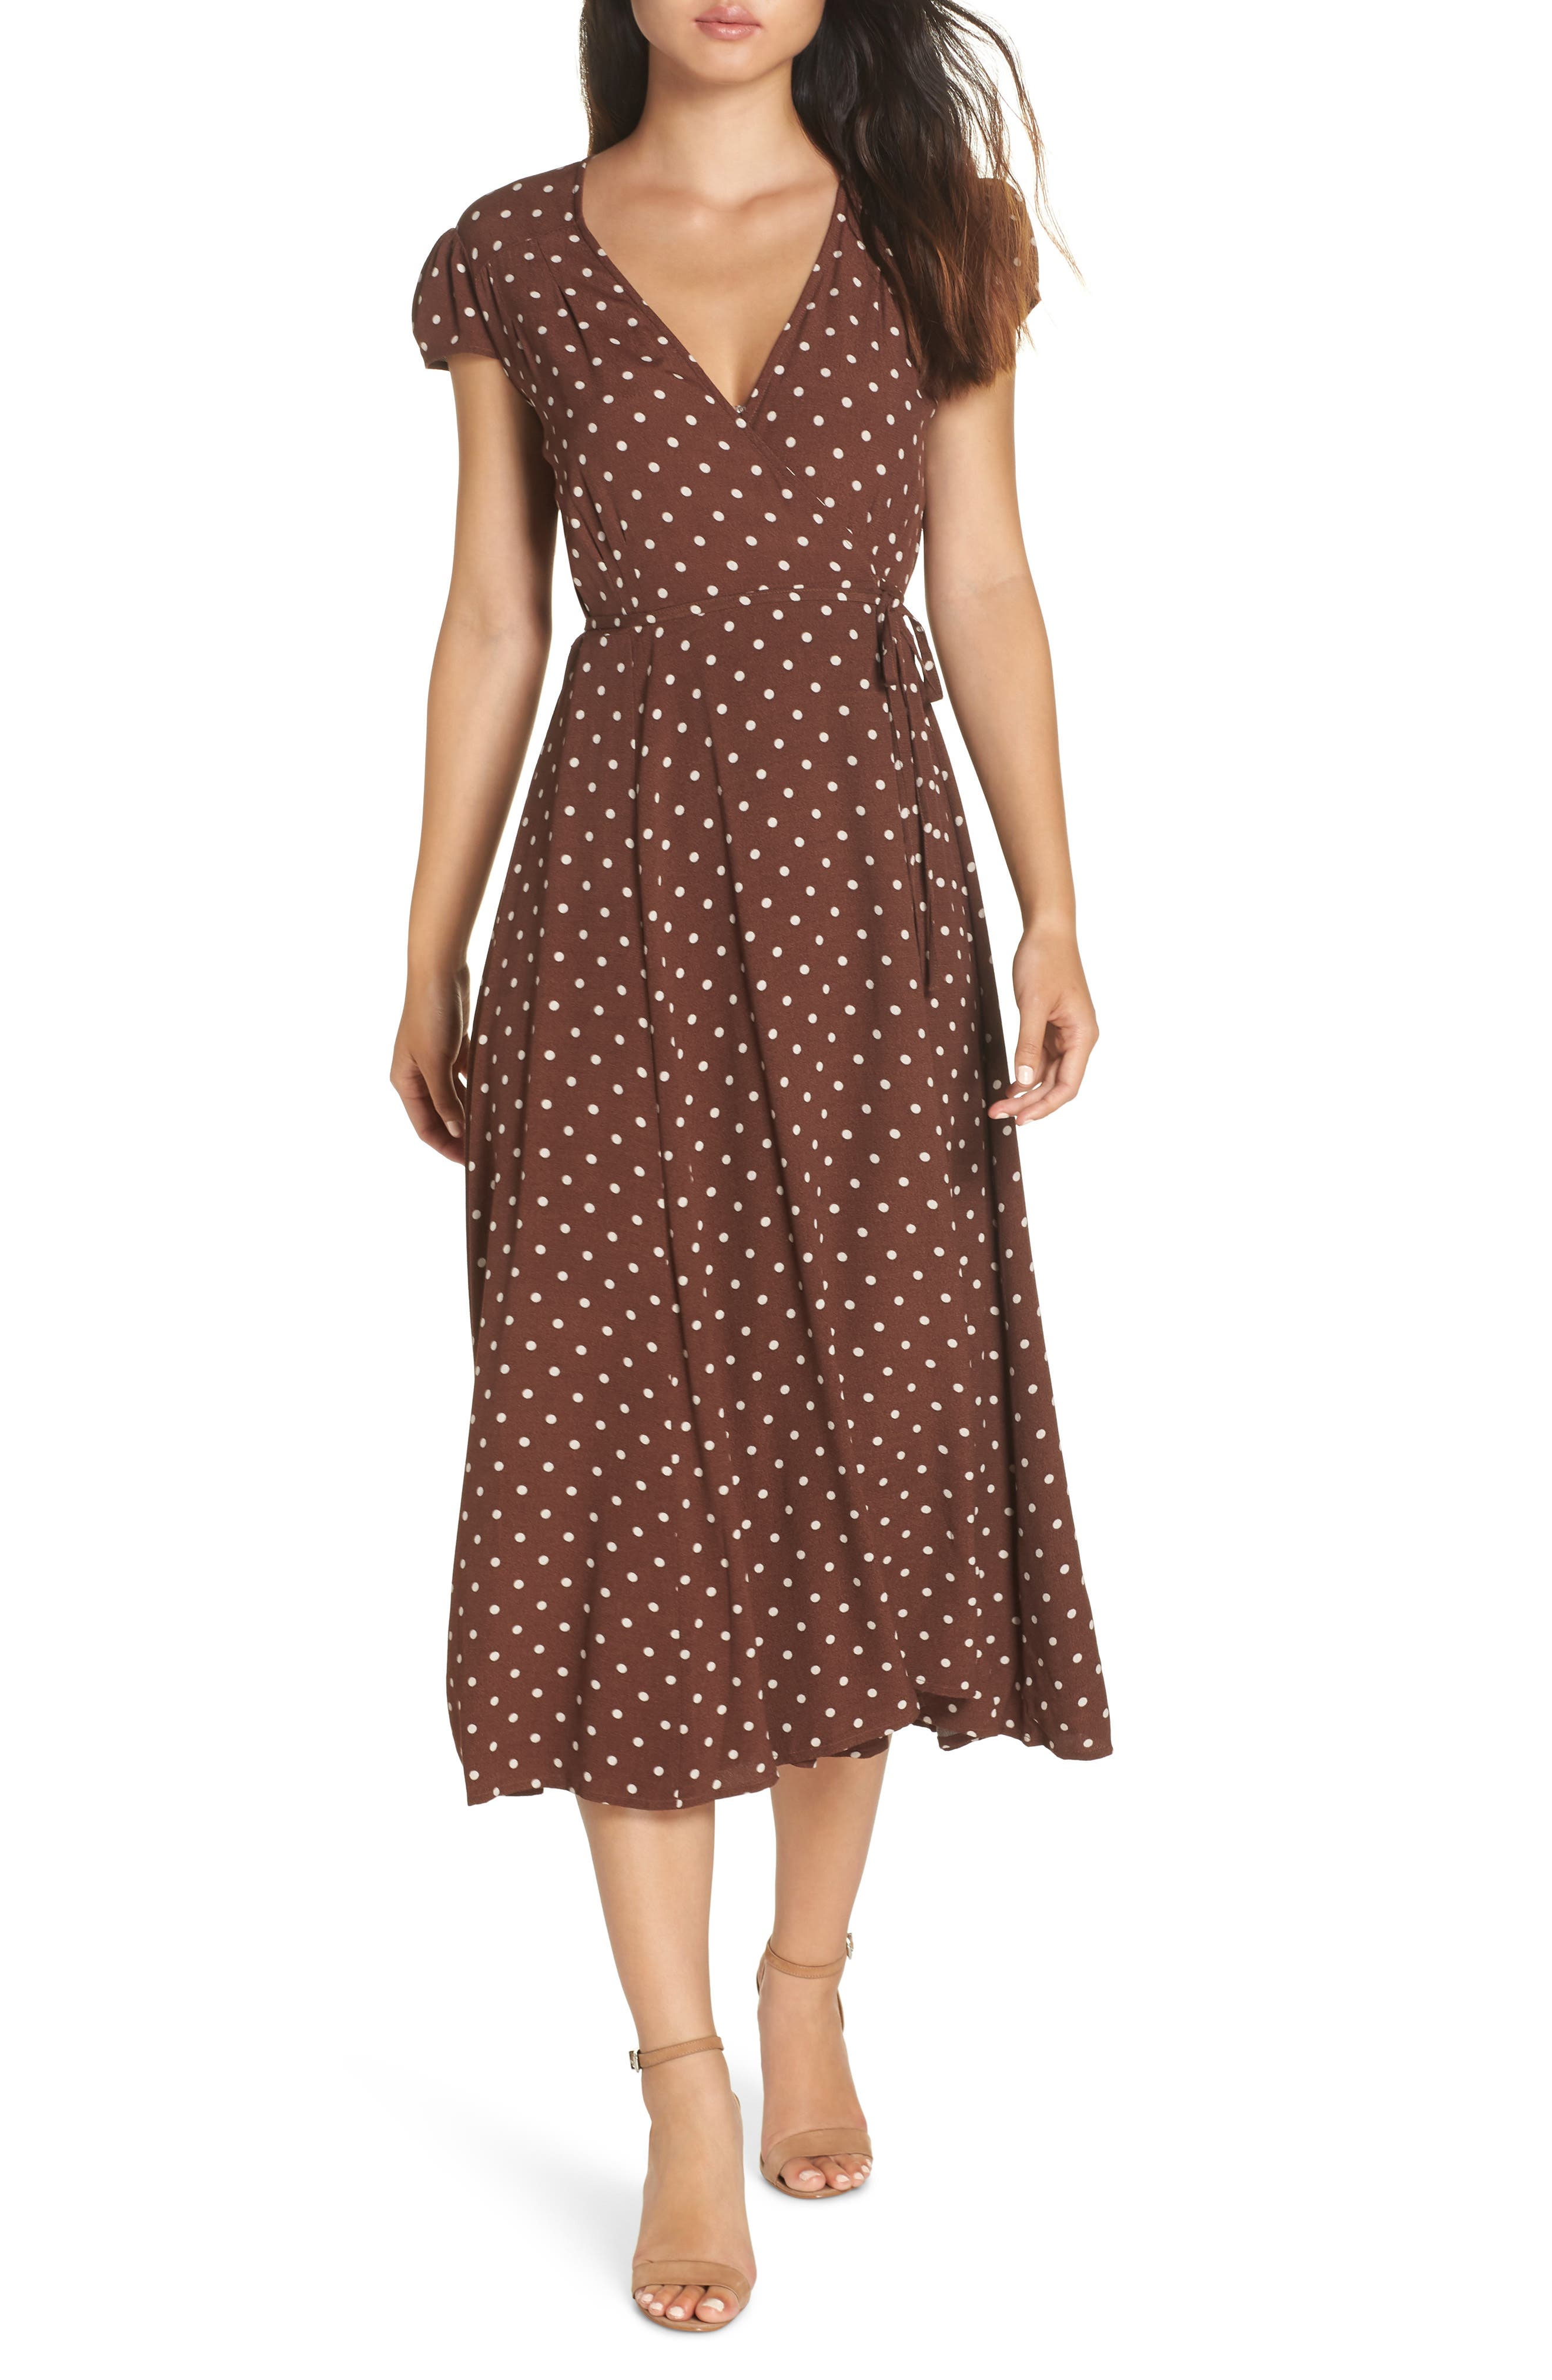 1930s Outfit Ideas for Women Womens Bardot Polka Dot Wrap Dress Size Medium - Brown $119.00 AT vintagedancer.com